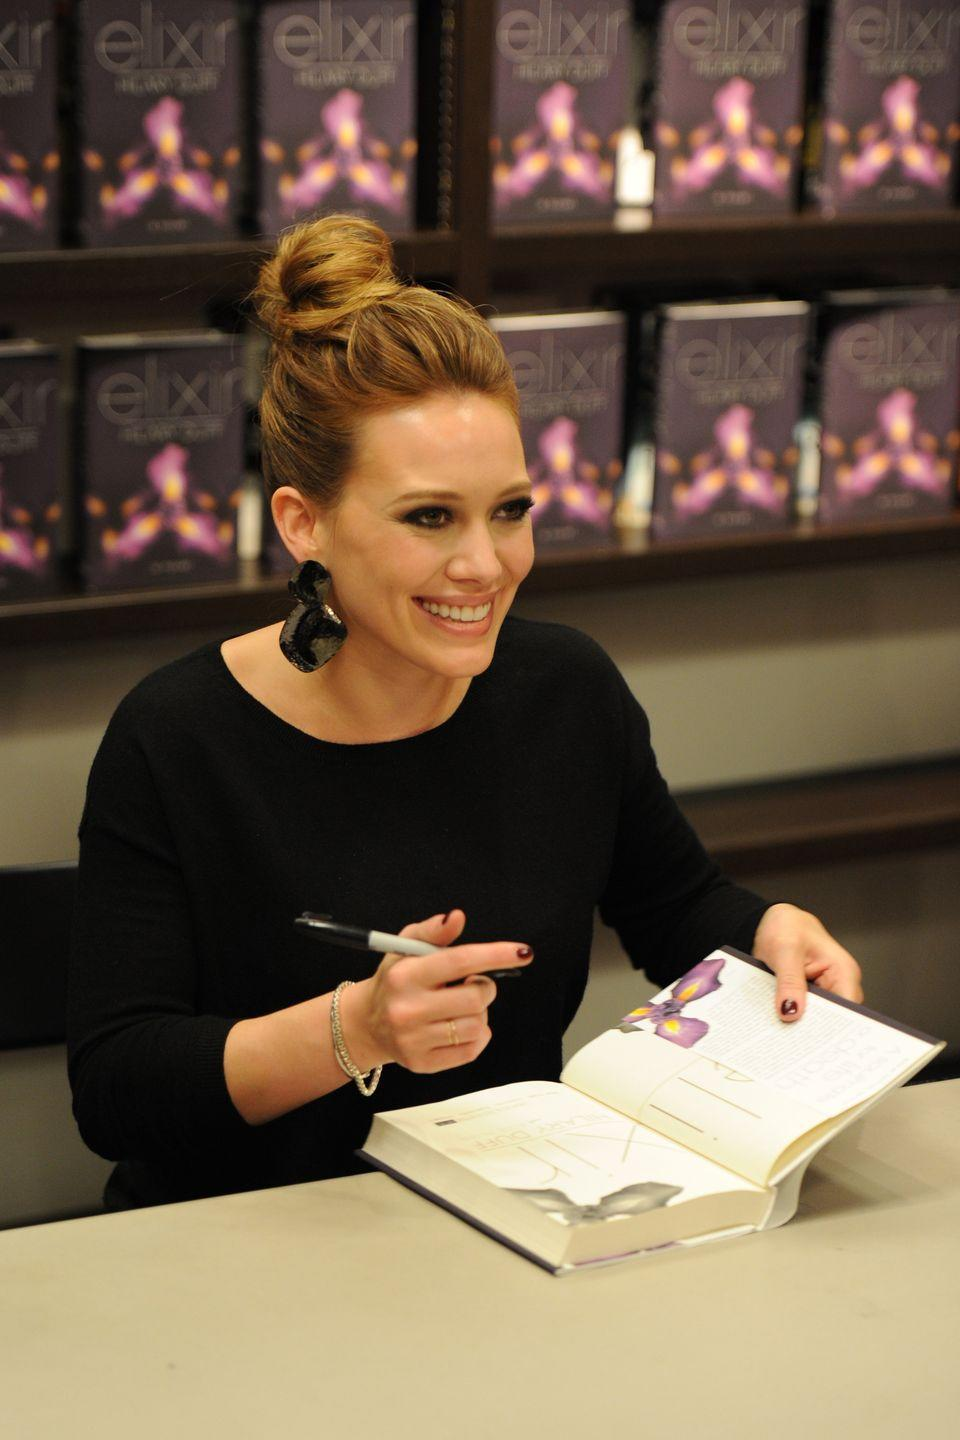 "<p>While Hilary Duff may play a powerhouse editor on <em>Younger</em>, the actress and singer has also proven herself capable on the other side of the table as well. The <em>Lizzie McGuire</em> star released her first young adult novel, <em>Elixir</em>, in October 2010. </p><p>The book centers on Clea Raymond, a talented photojournalist whose life starts to unravel after her father's disappearance and the appearance of a mysterious stranger, Sage, who might be the only one who can help her. </p><p>""I've always loved the escape of a great book, especially one that features a strong, inspiring female character you feel you really understand,"" Hilary told <em><a href=""https://ew.com/article/2010/03/09/hilary-duff-to-write-a-ya-series/"" rel=""nofollow noopener"" target=""_blank"" data-ylk=""slk:Entertainment Weekly"" class=""link rapid-noclick-resp"">Entertainment Weekly</a></em> at the time of <em>Elixir</em>'s release. The story of Clea and Sage continues in two more books in the series, <em>Devoted</em> and <em>True</em>.</p><p><a class=""link rapid-noclick-resp"" href=""https://www.amazon.com/Elixir-Hilary-Duff/dp/1442408545?tag=syn-yahoo-20&ascsubtag=%5Bartid%7C2139.g.34385633%5Bsrc%7Cyahoo-us"" rel=""nofollow noopener"" target=""_blank"" data-ylk=""slk:Buy the Book"">Buy the Book</a></p>"